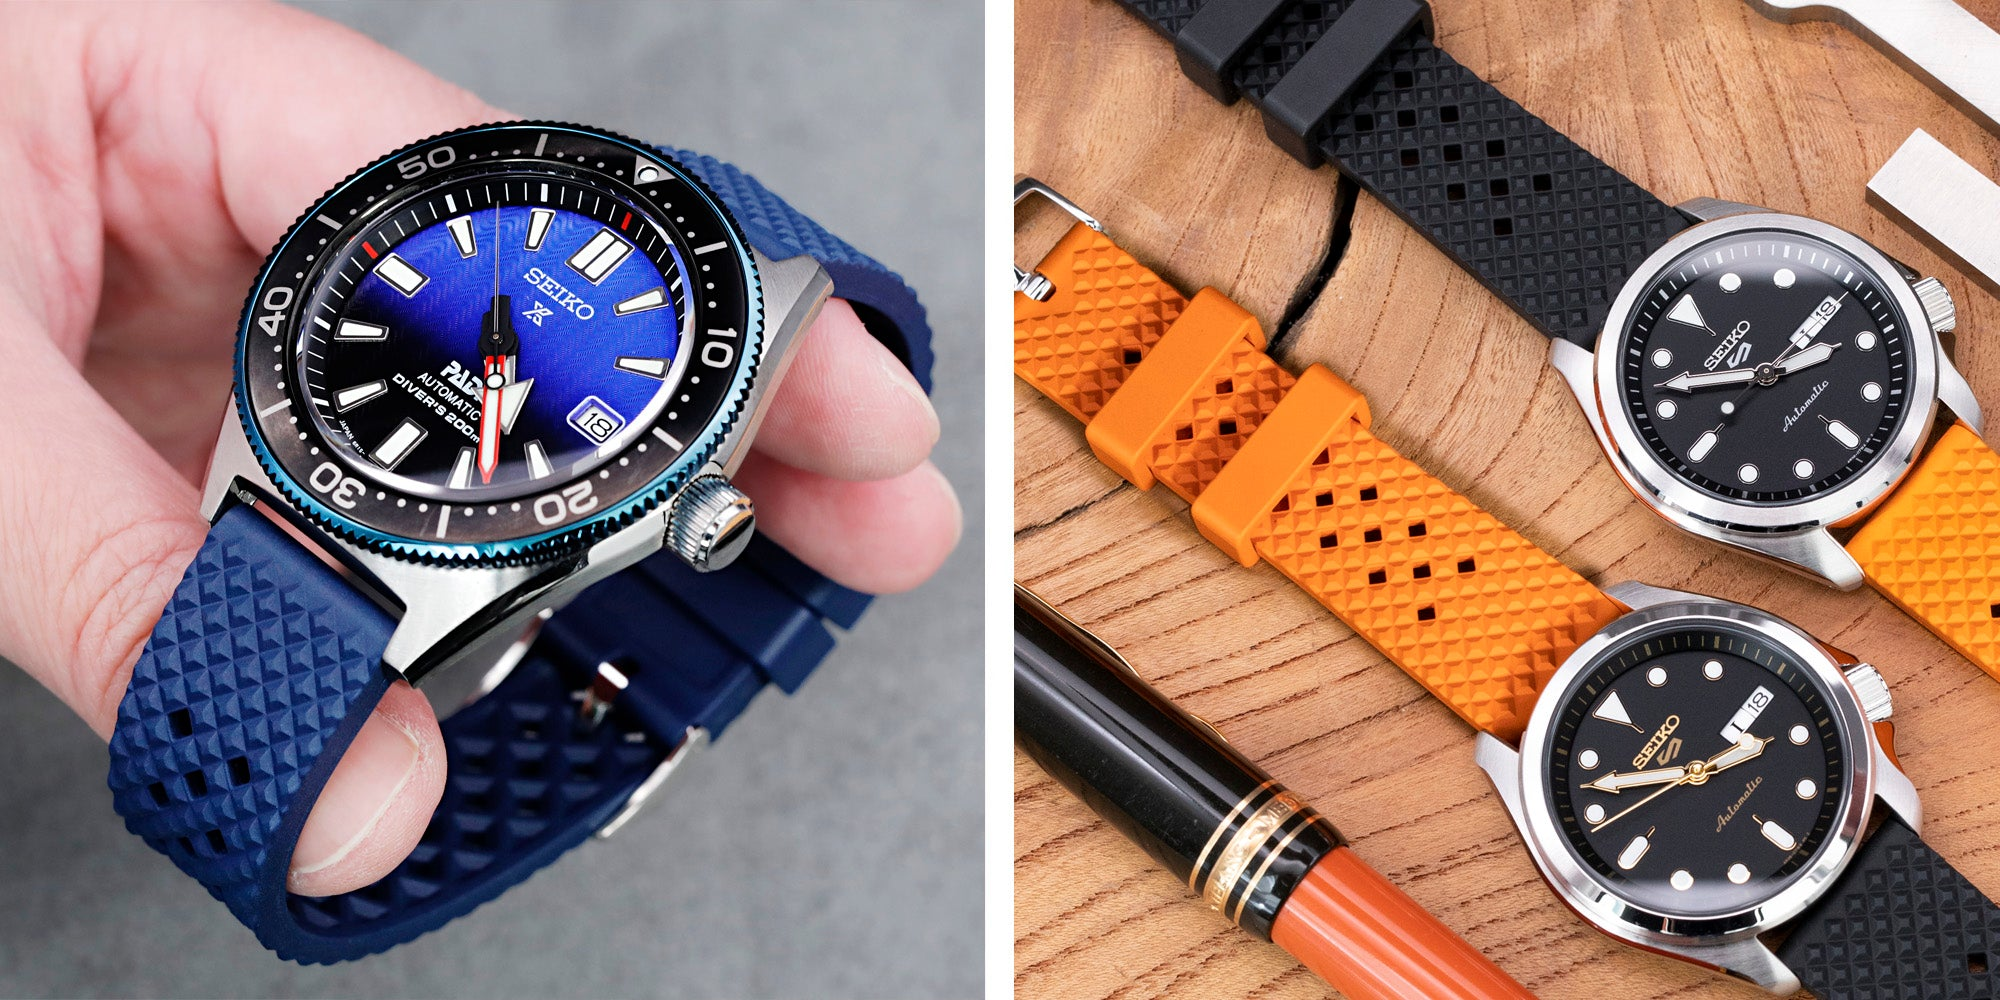 Rhombus rubber watch bands by Strapcode